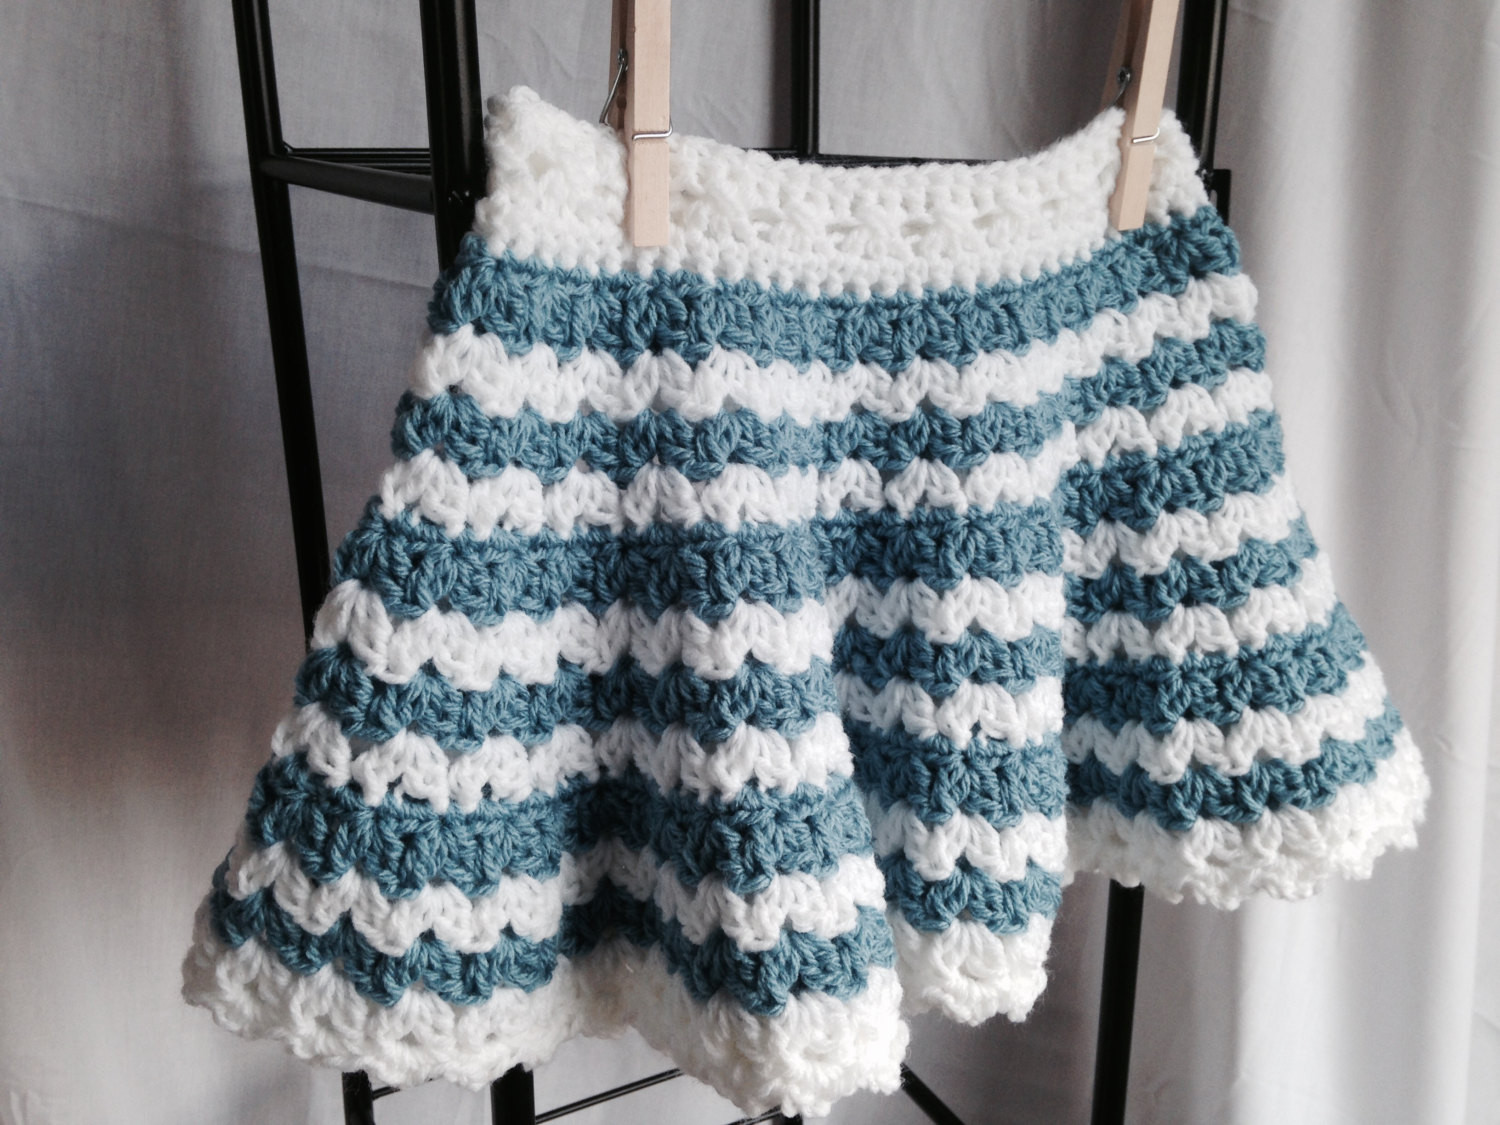 Crochet Skirt Patterns Beautiful Crochet Pattern Little Girls Skirt Crochet Pattern toddler Of Fresh 47 Ideas Crochet Skirt Patterns